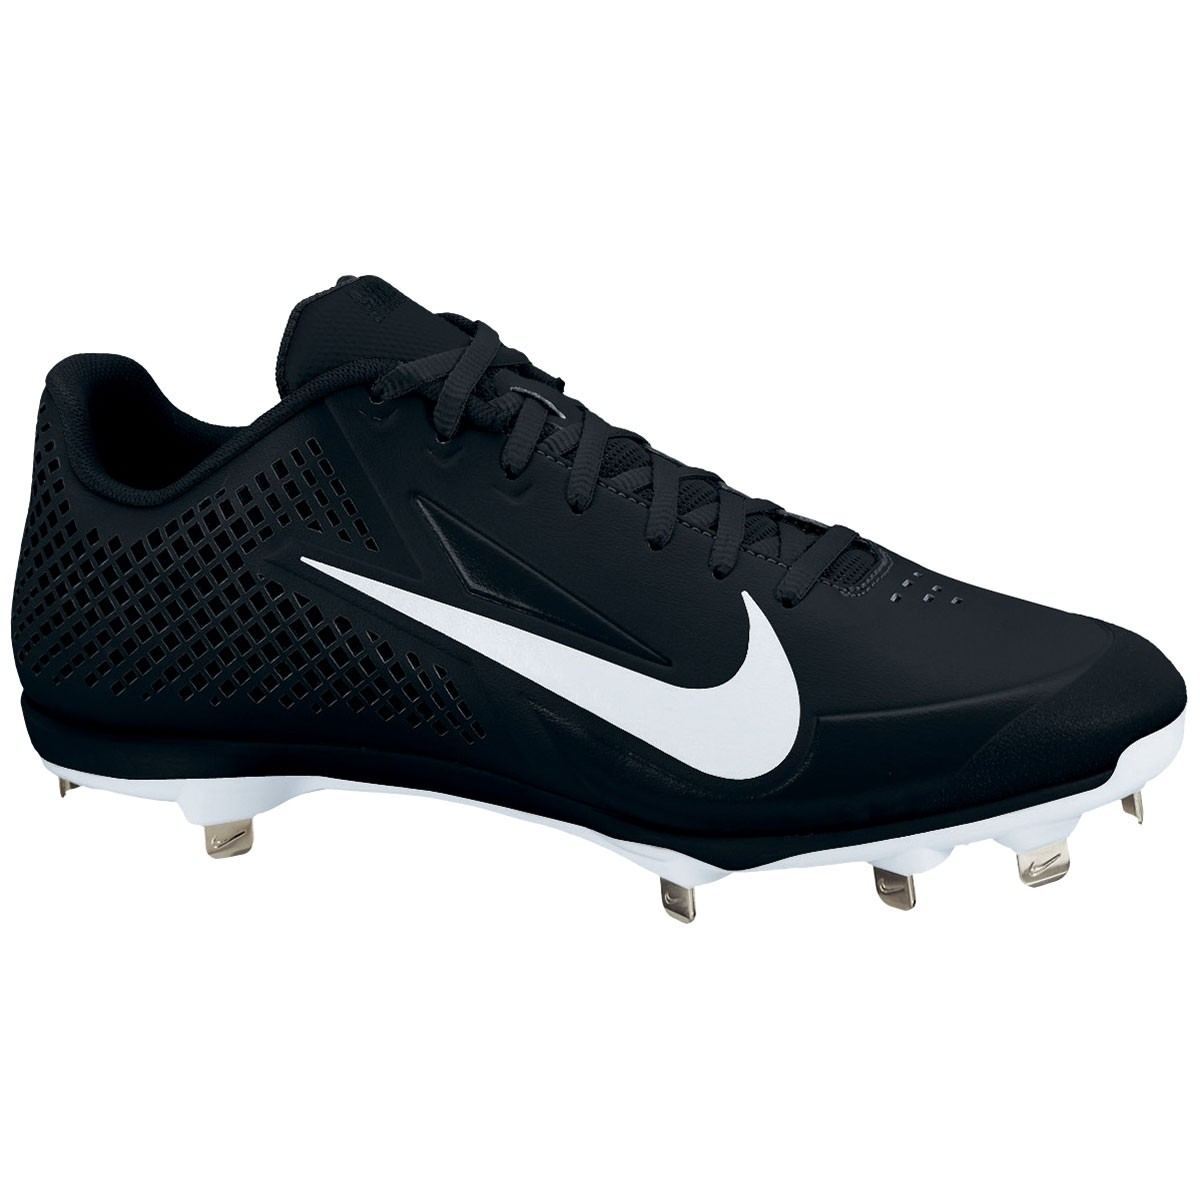 Cleats For The 2013 Season Are Arguably The Best Cleats On The Market